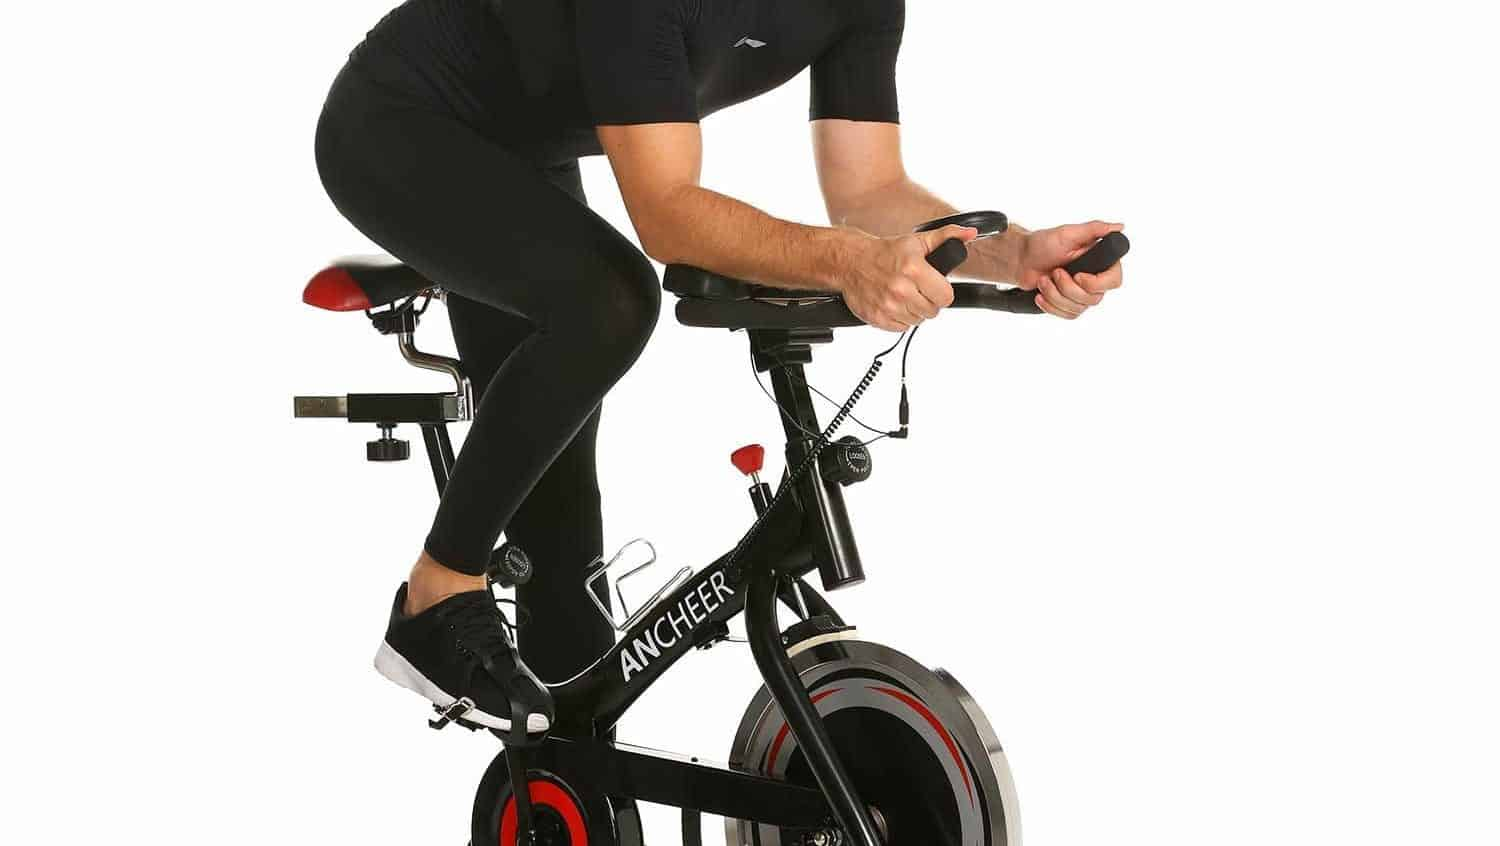 ANCHEER Indoor Belt Drive Cycling Bikes with 40LBS Flywheel (Model: ANCHEER-A5001) Review